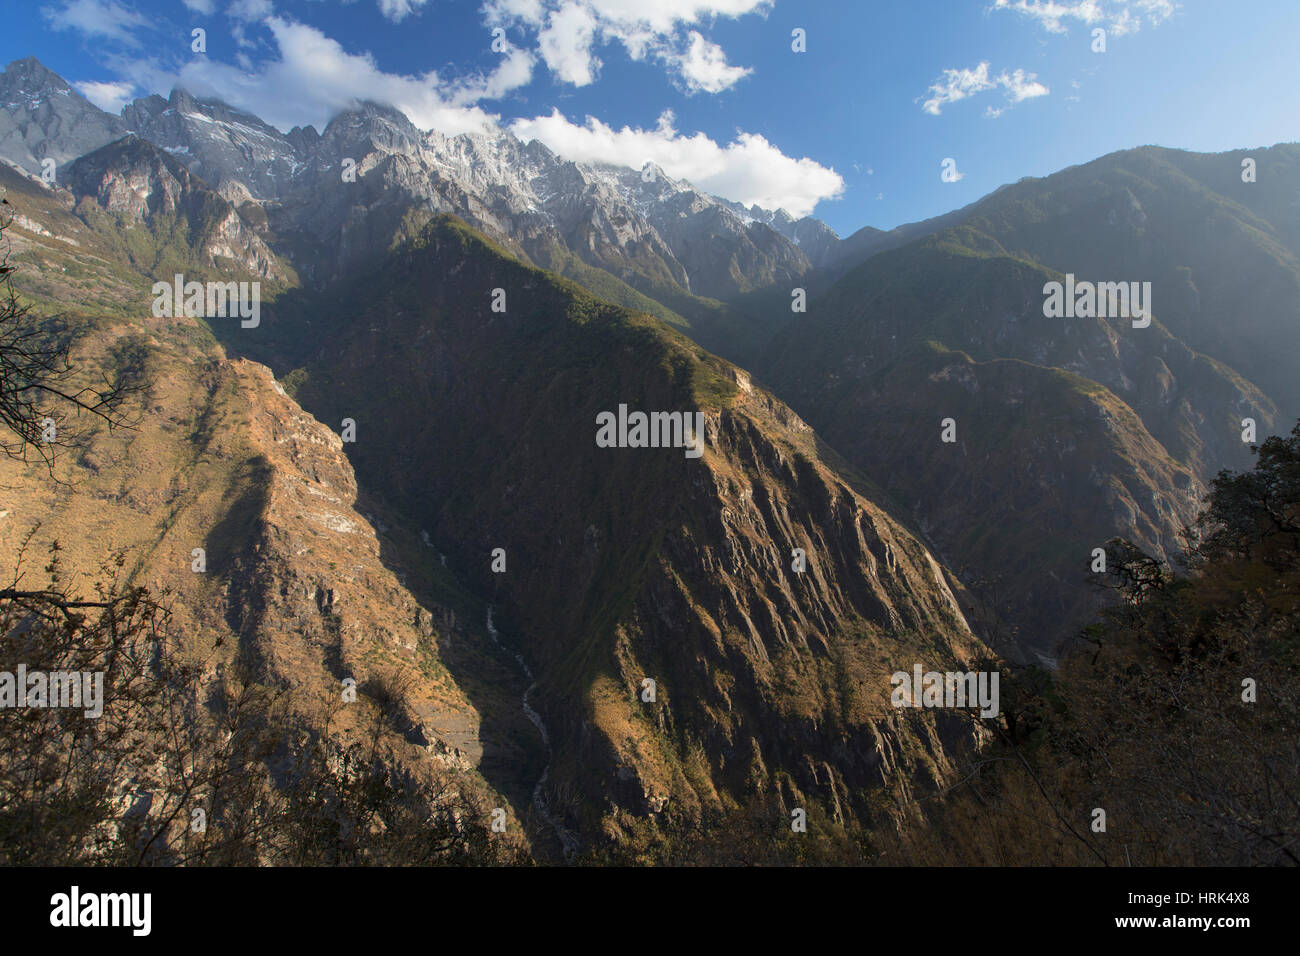 Tiger Leaping Gorge and Jade Dragon Snow Mountain (Yulong Xueshan), Yunnan, China - Stock Image